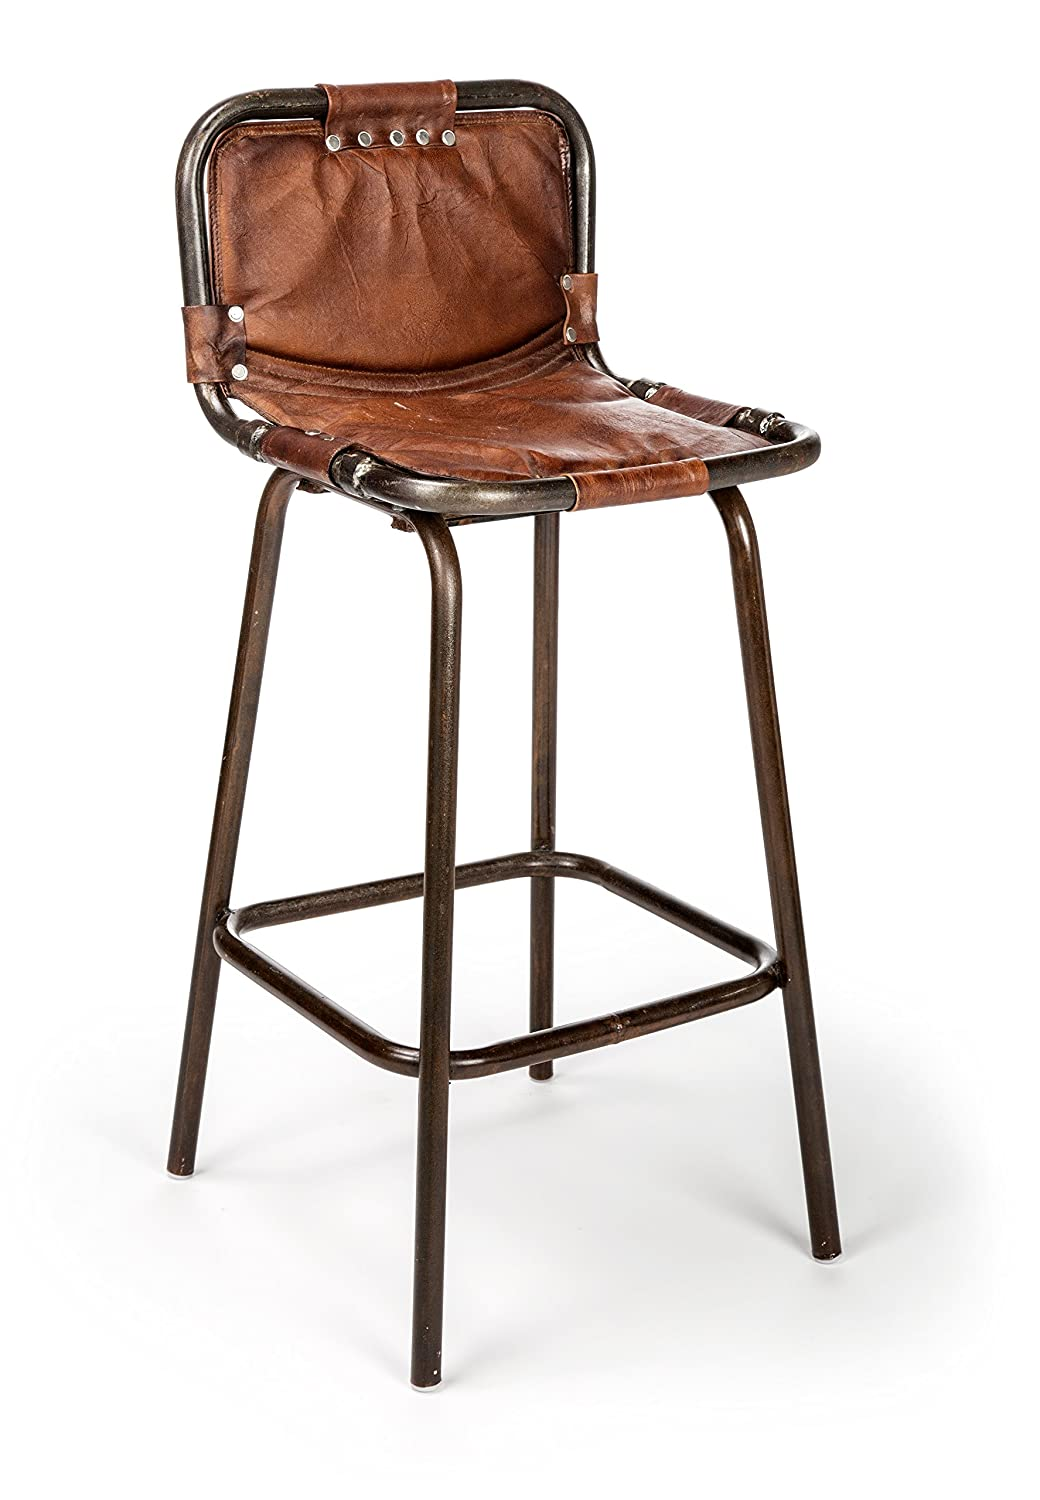 The Barrel Shack The Wayne – Handmade Tall Leather Chair from